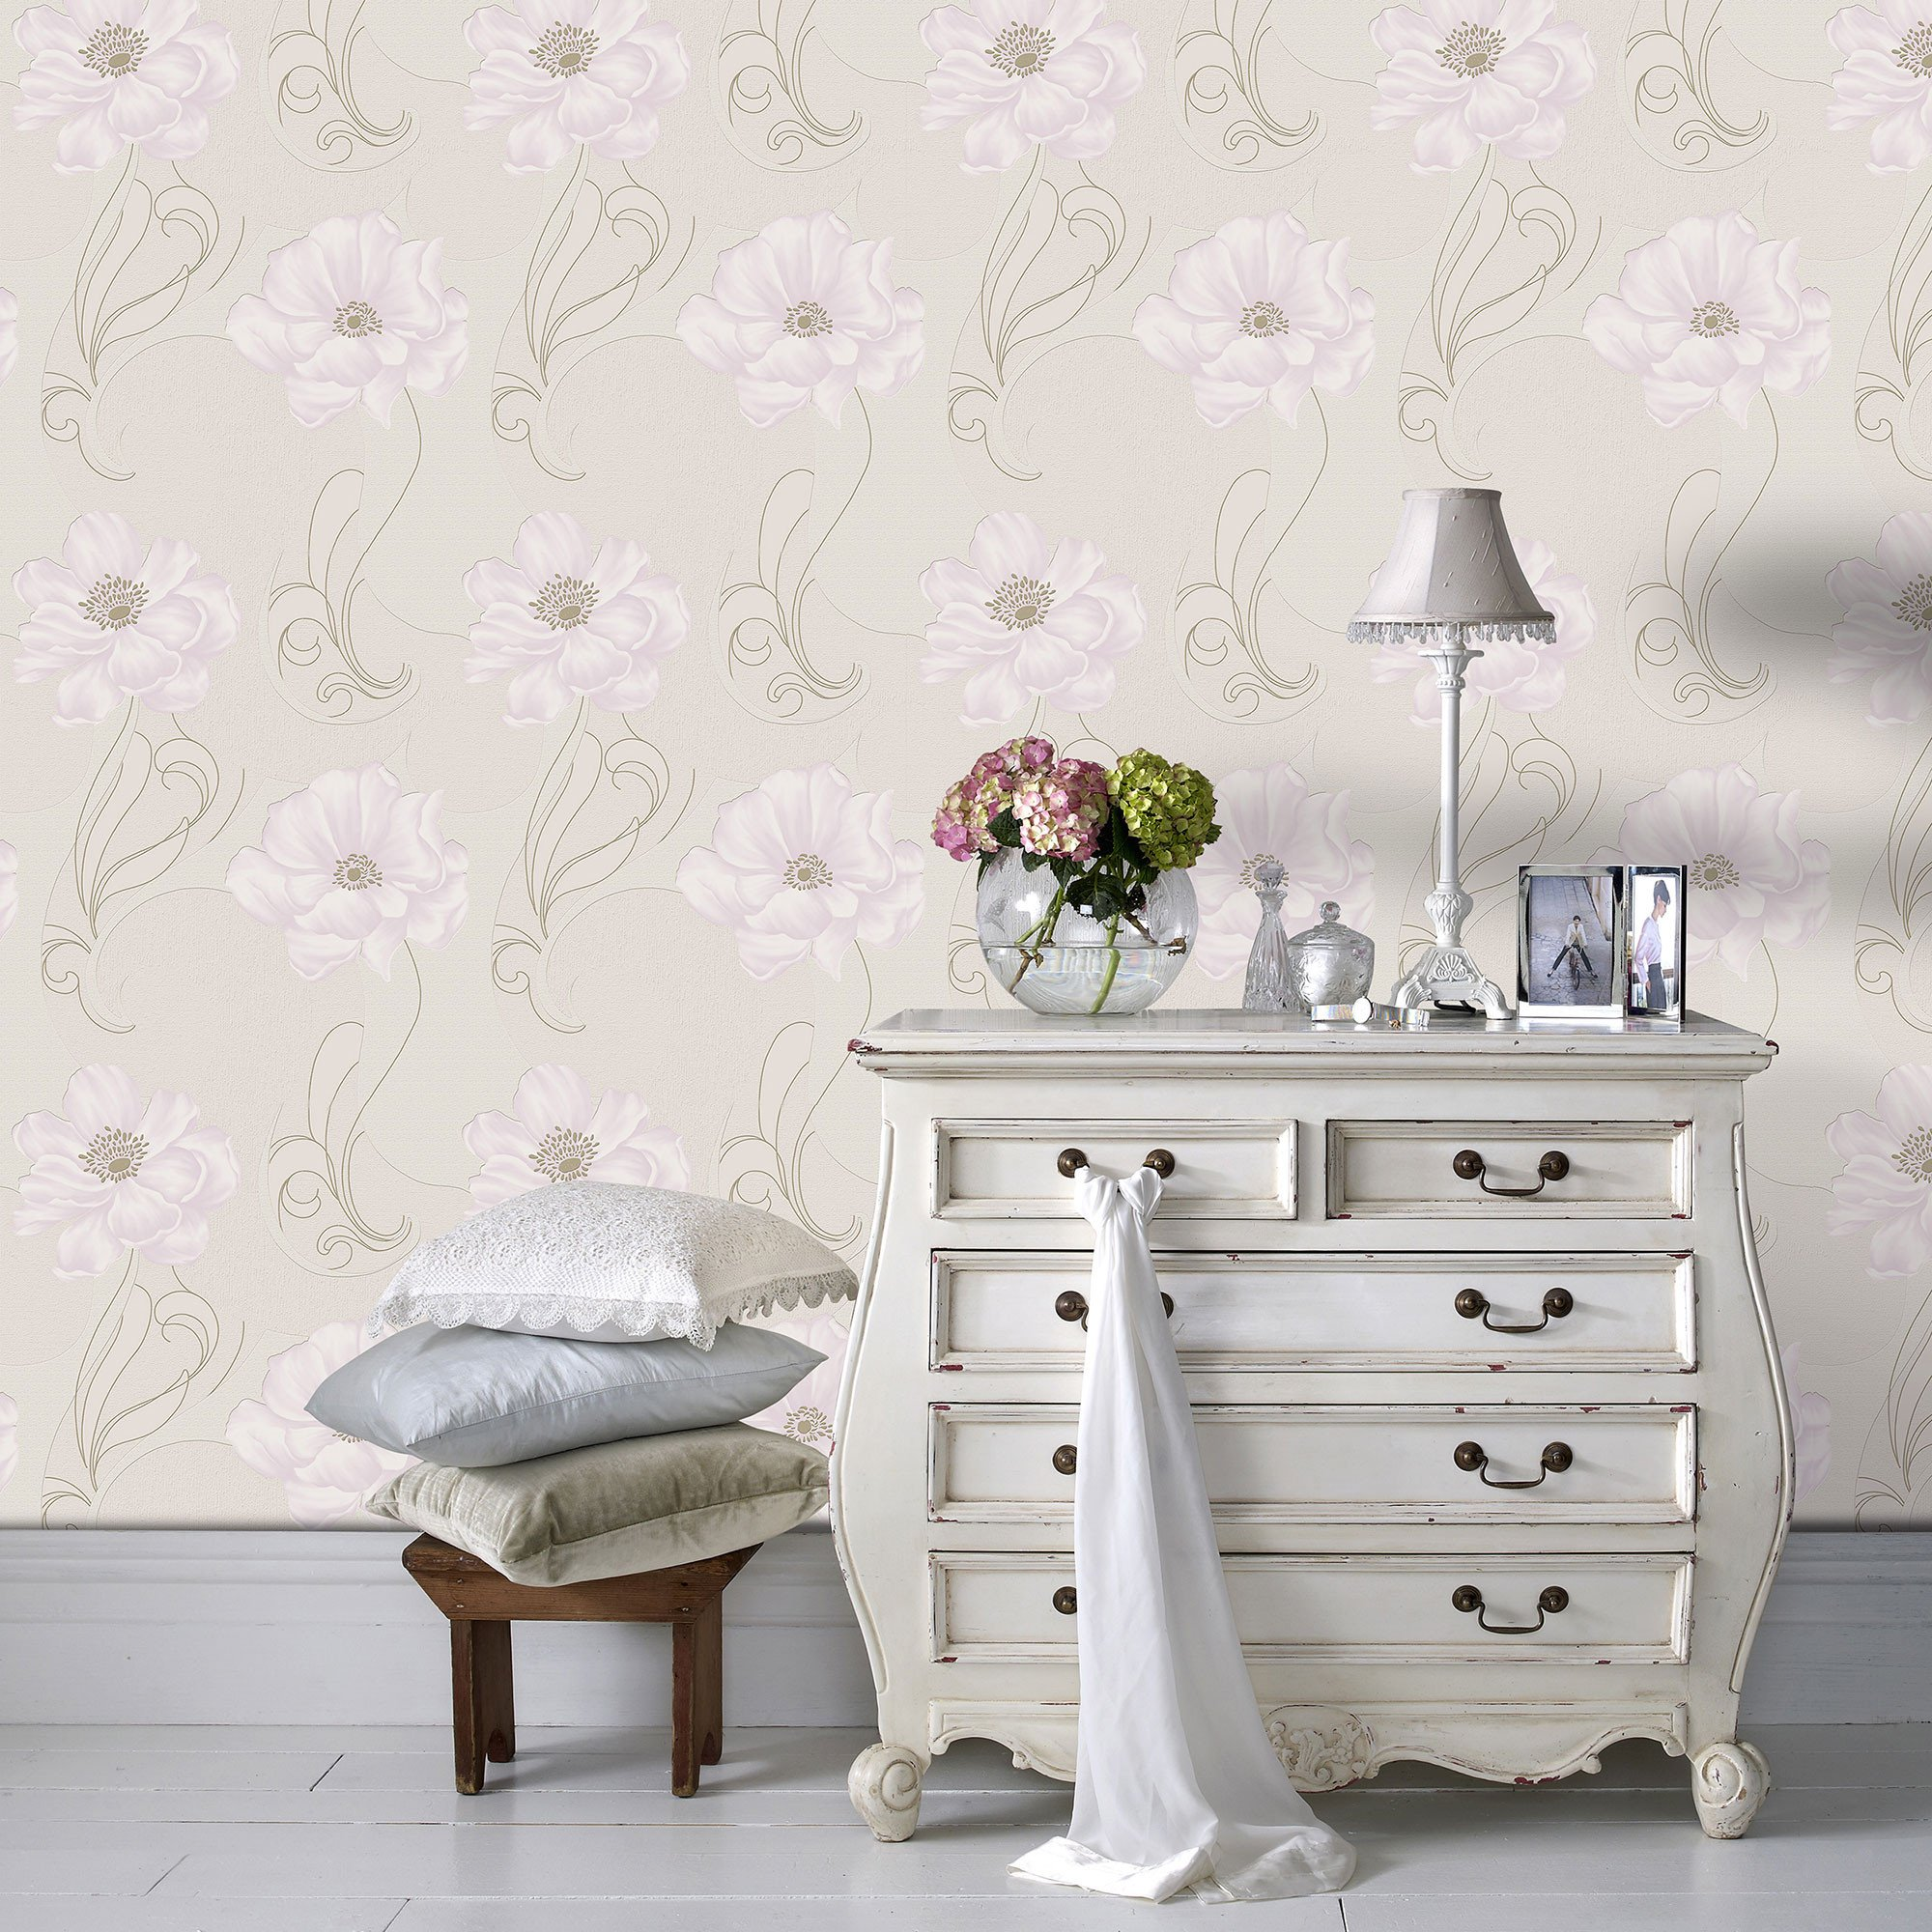 download graham and brown iris wallpaper gallery. Black Bedroom Furniture Sets. Home Design Ideas